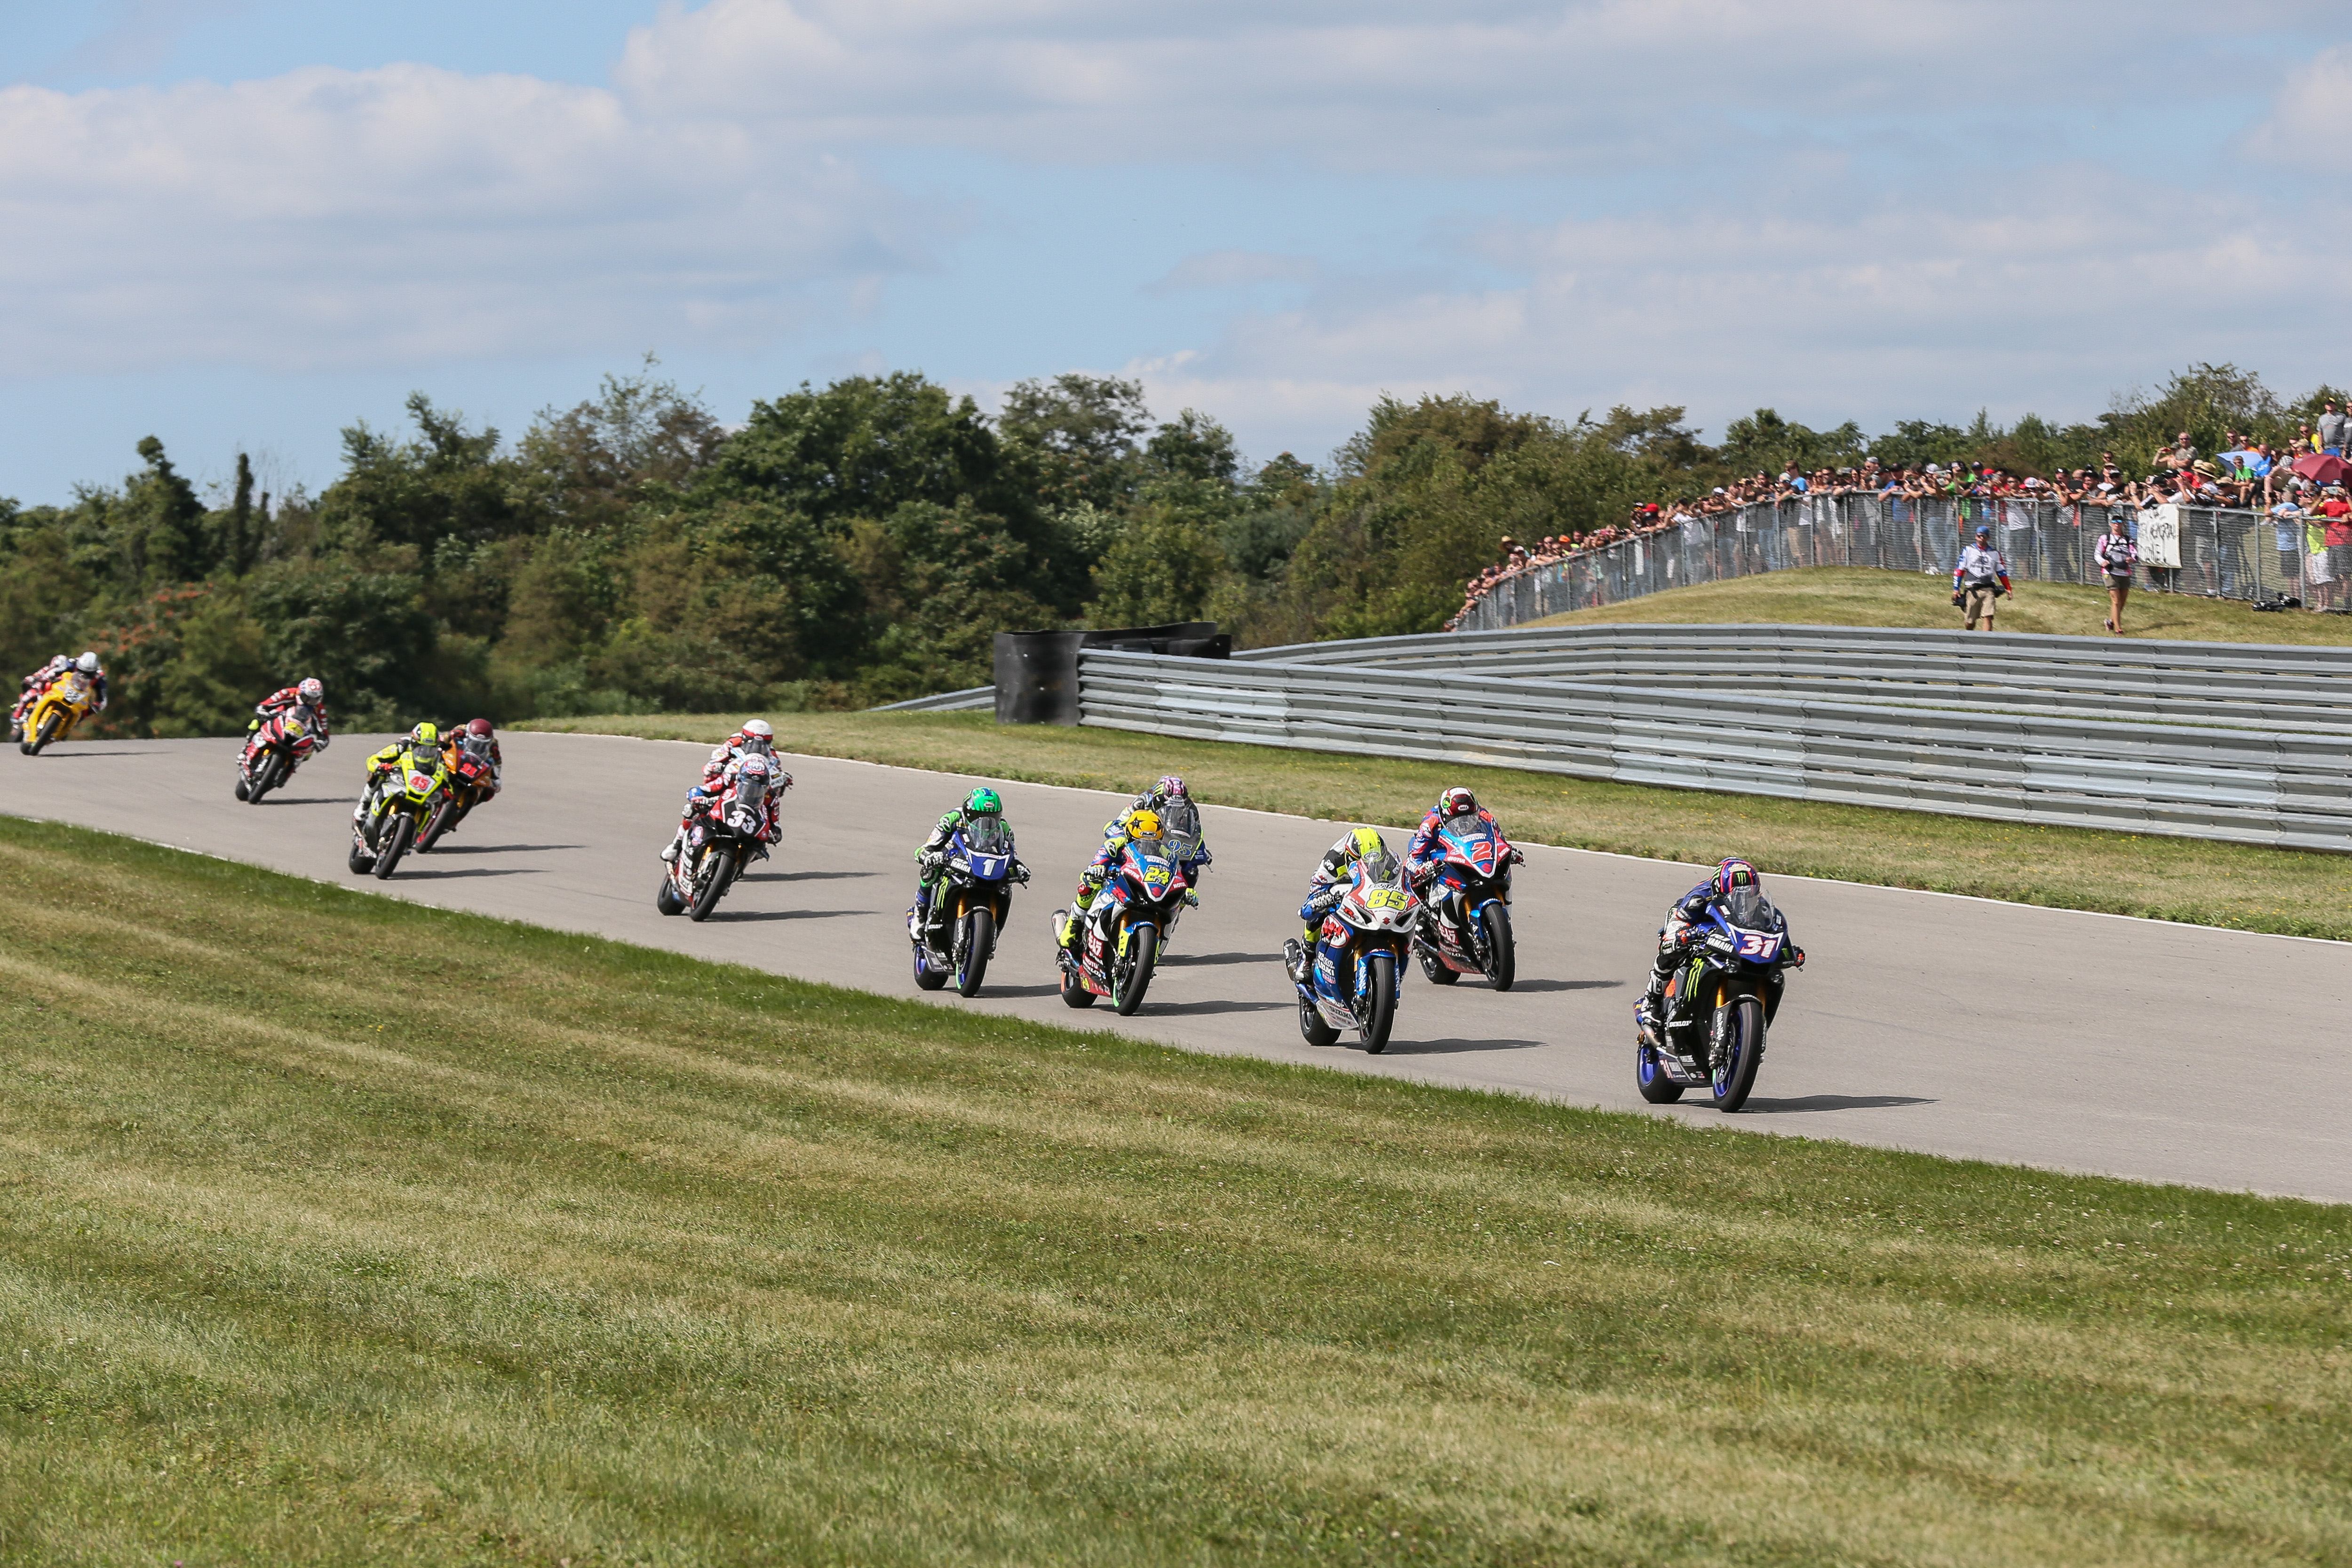 2019 PittRace SBK Race 2